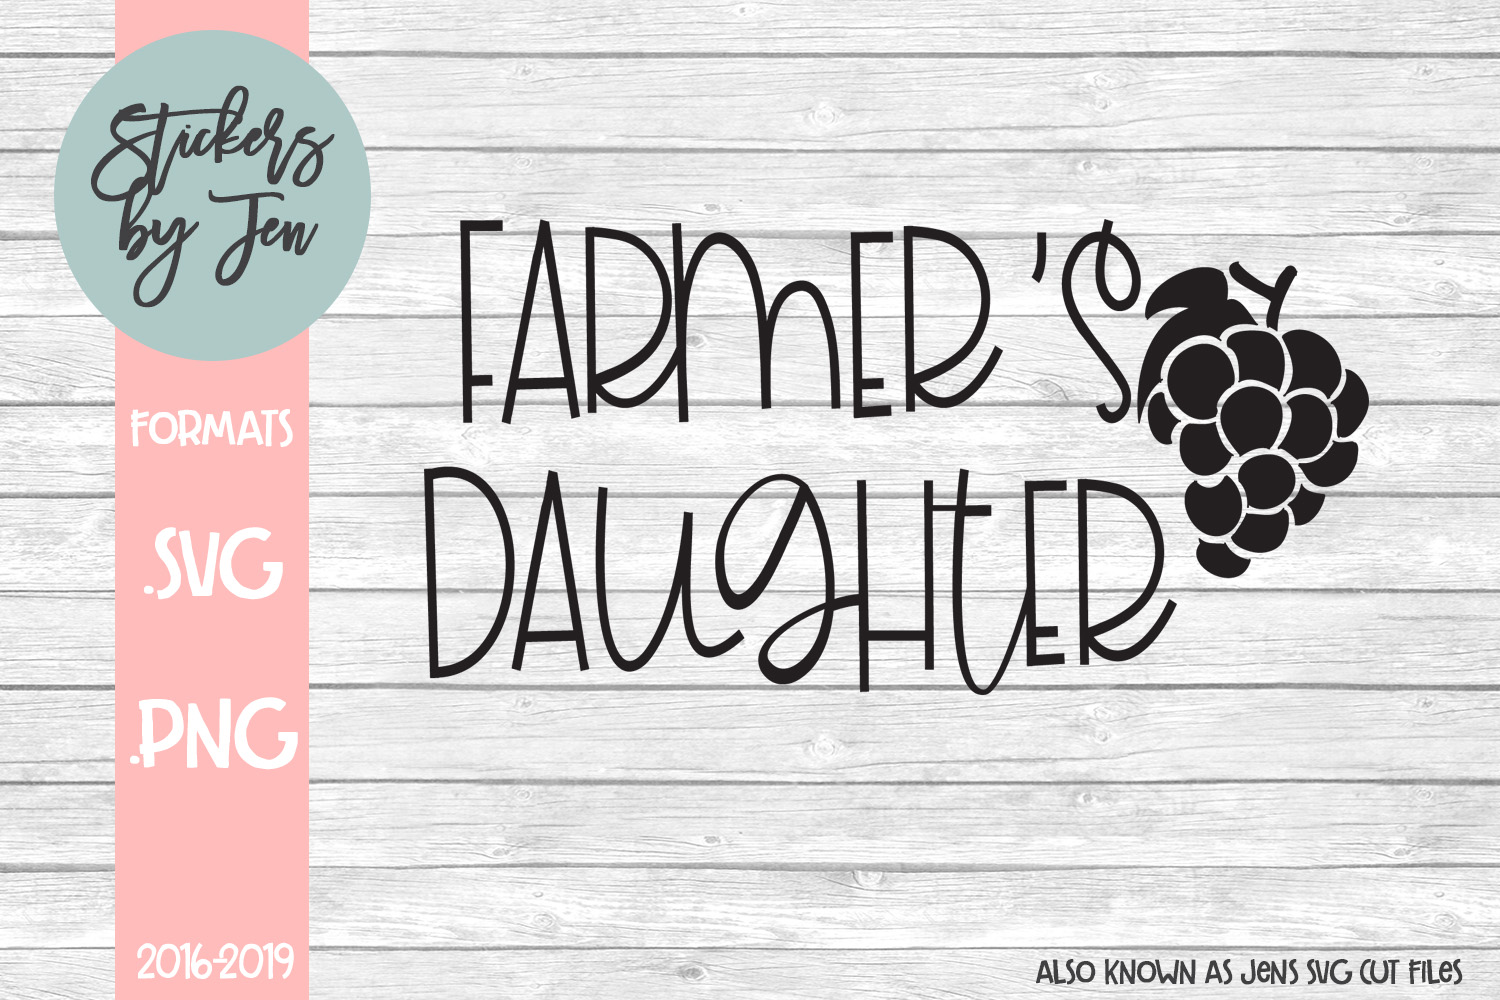 Download Free Farmers Daughter Graphic By Stickers By Jennifer Creative Fabrica for Cricut Explore, Silhouette and other cutting machines.